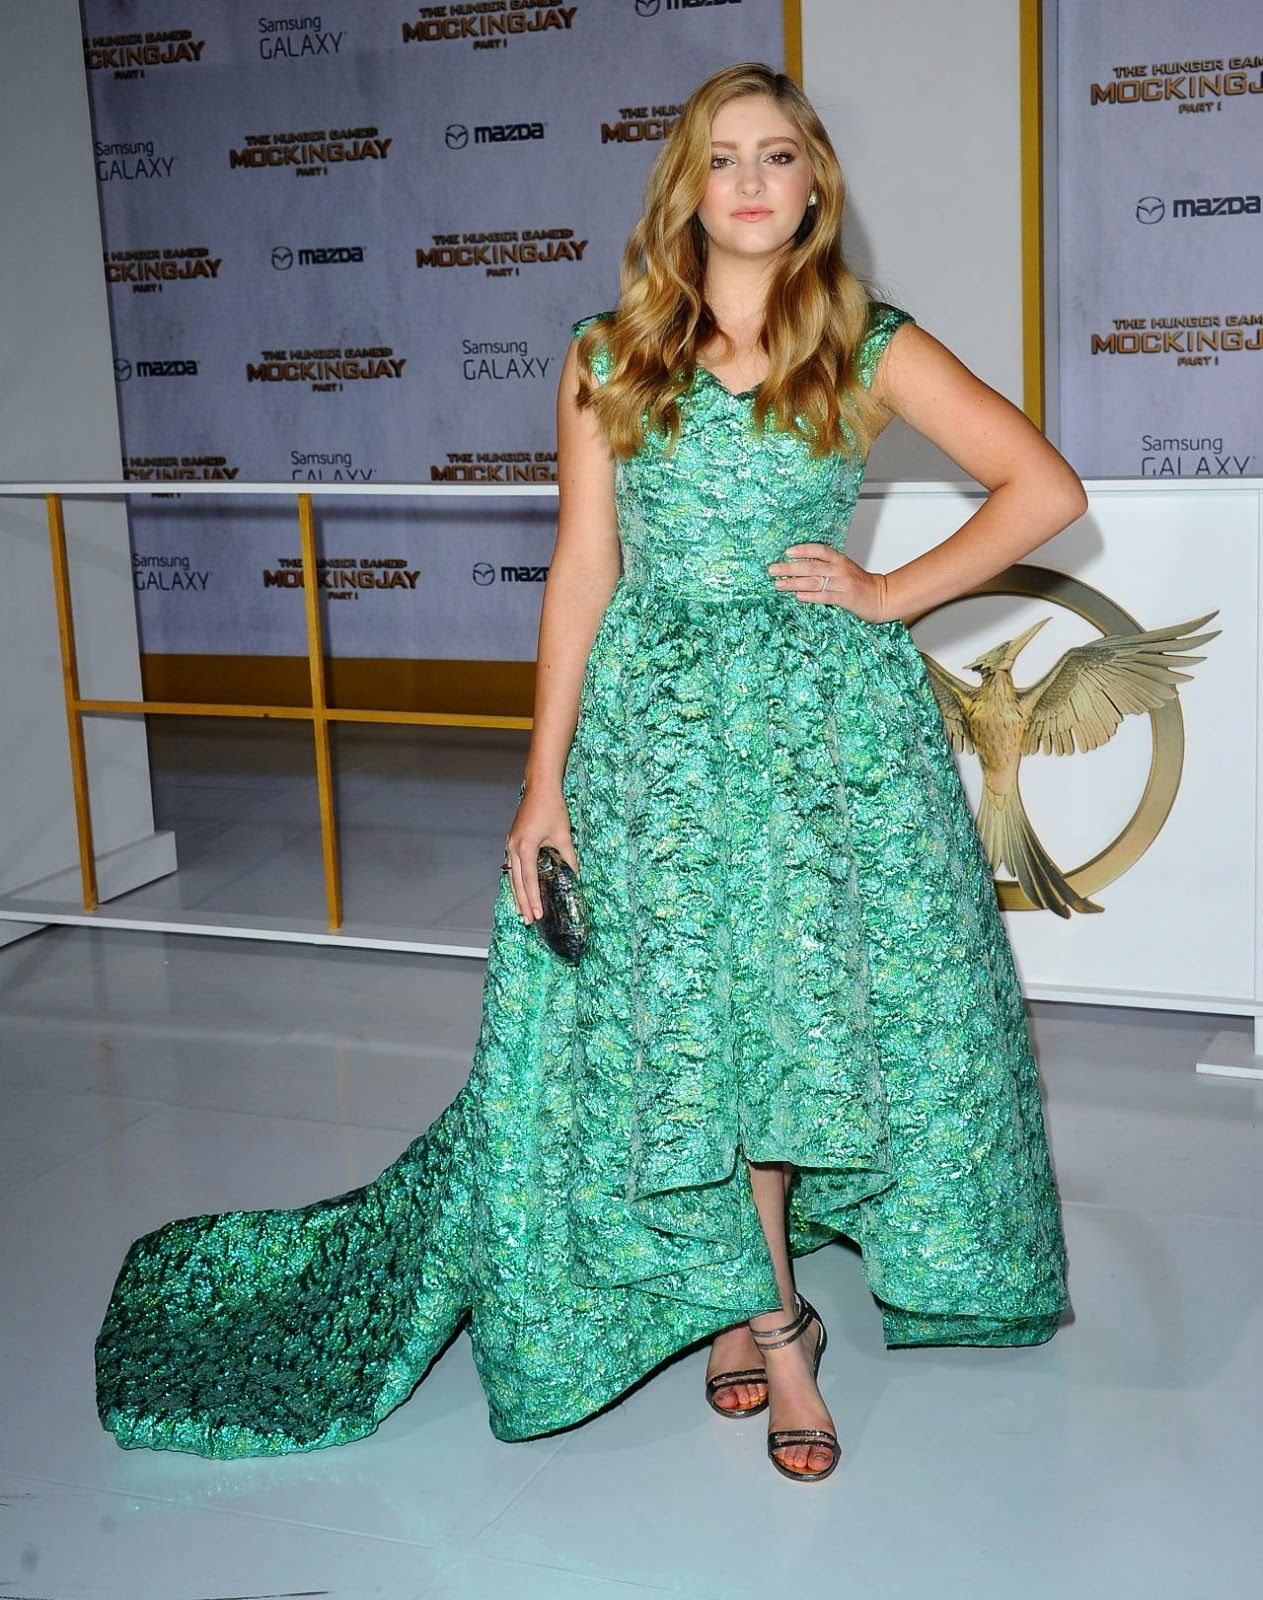 Willow Shields in a mint green gown at The Hunger Games: Mockingjay Part 1 LA premiere